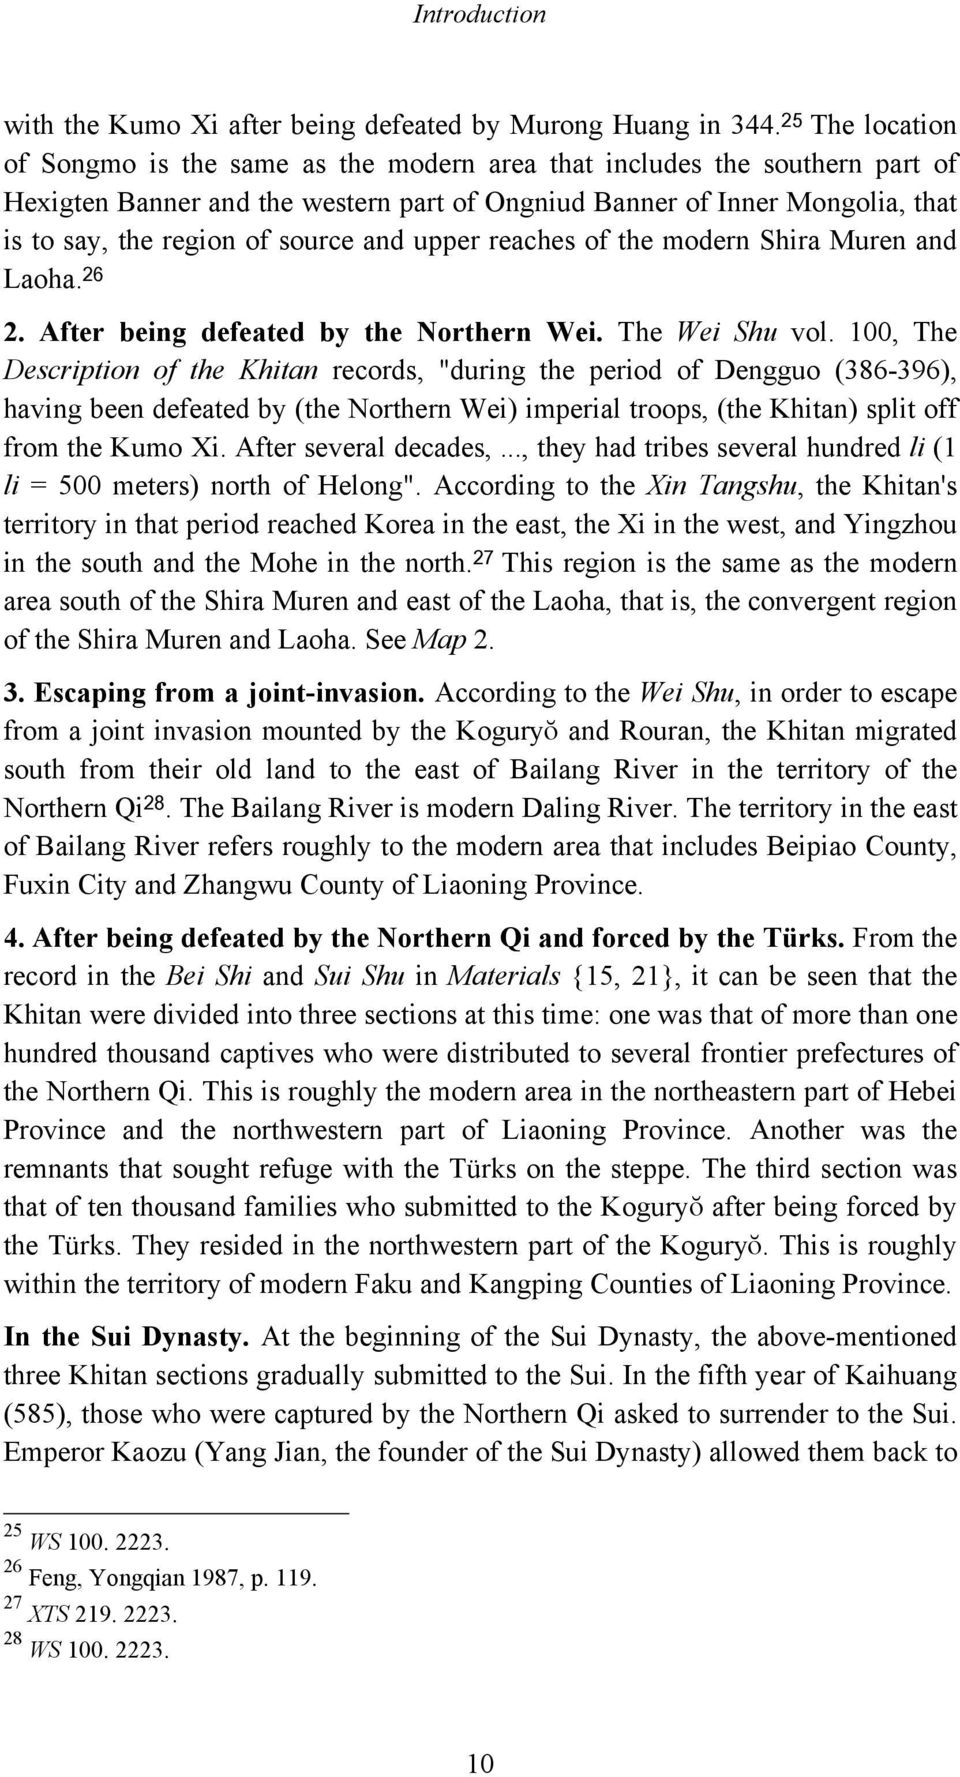 source and upper reaches of the modern Shira Muren and Laoha. 26 2. After being defeated by the Northern Wei. The Wei Shu vol.